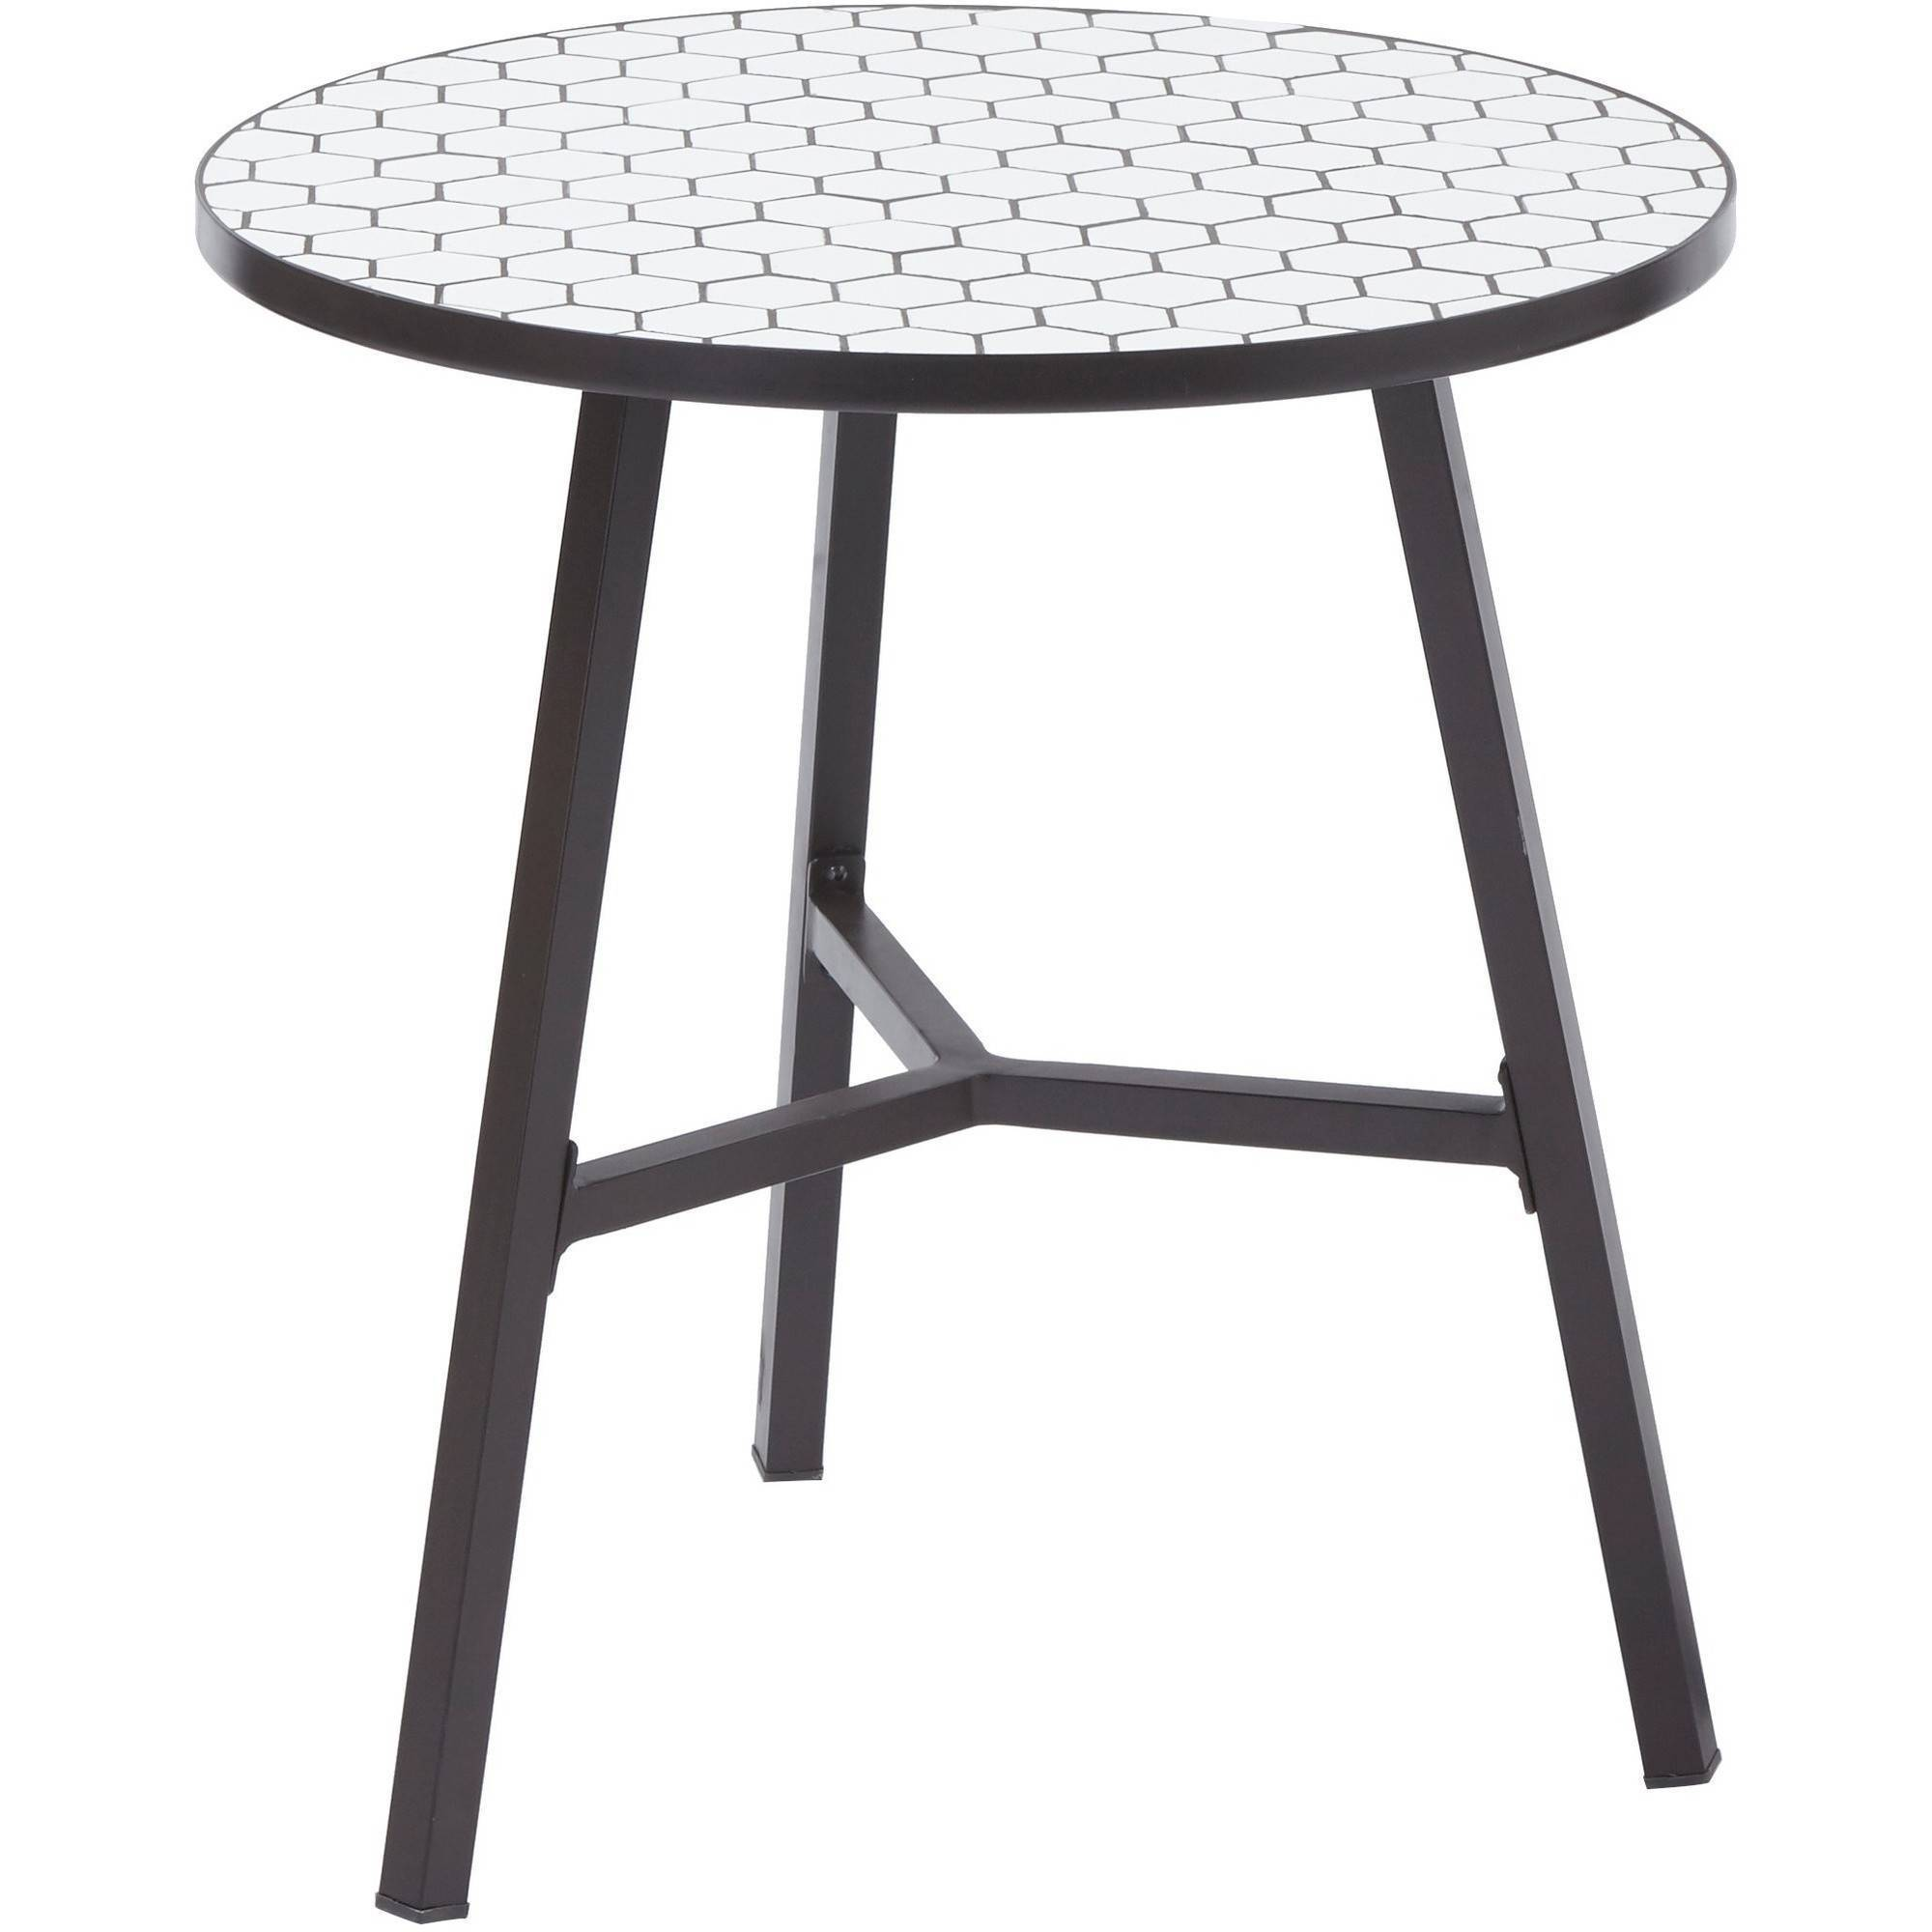 Images of outdoor table patio furniture - walmart.com urcrvkn